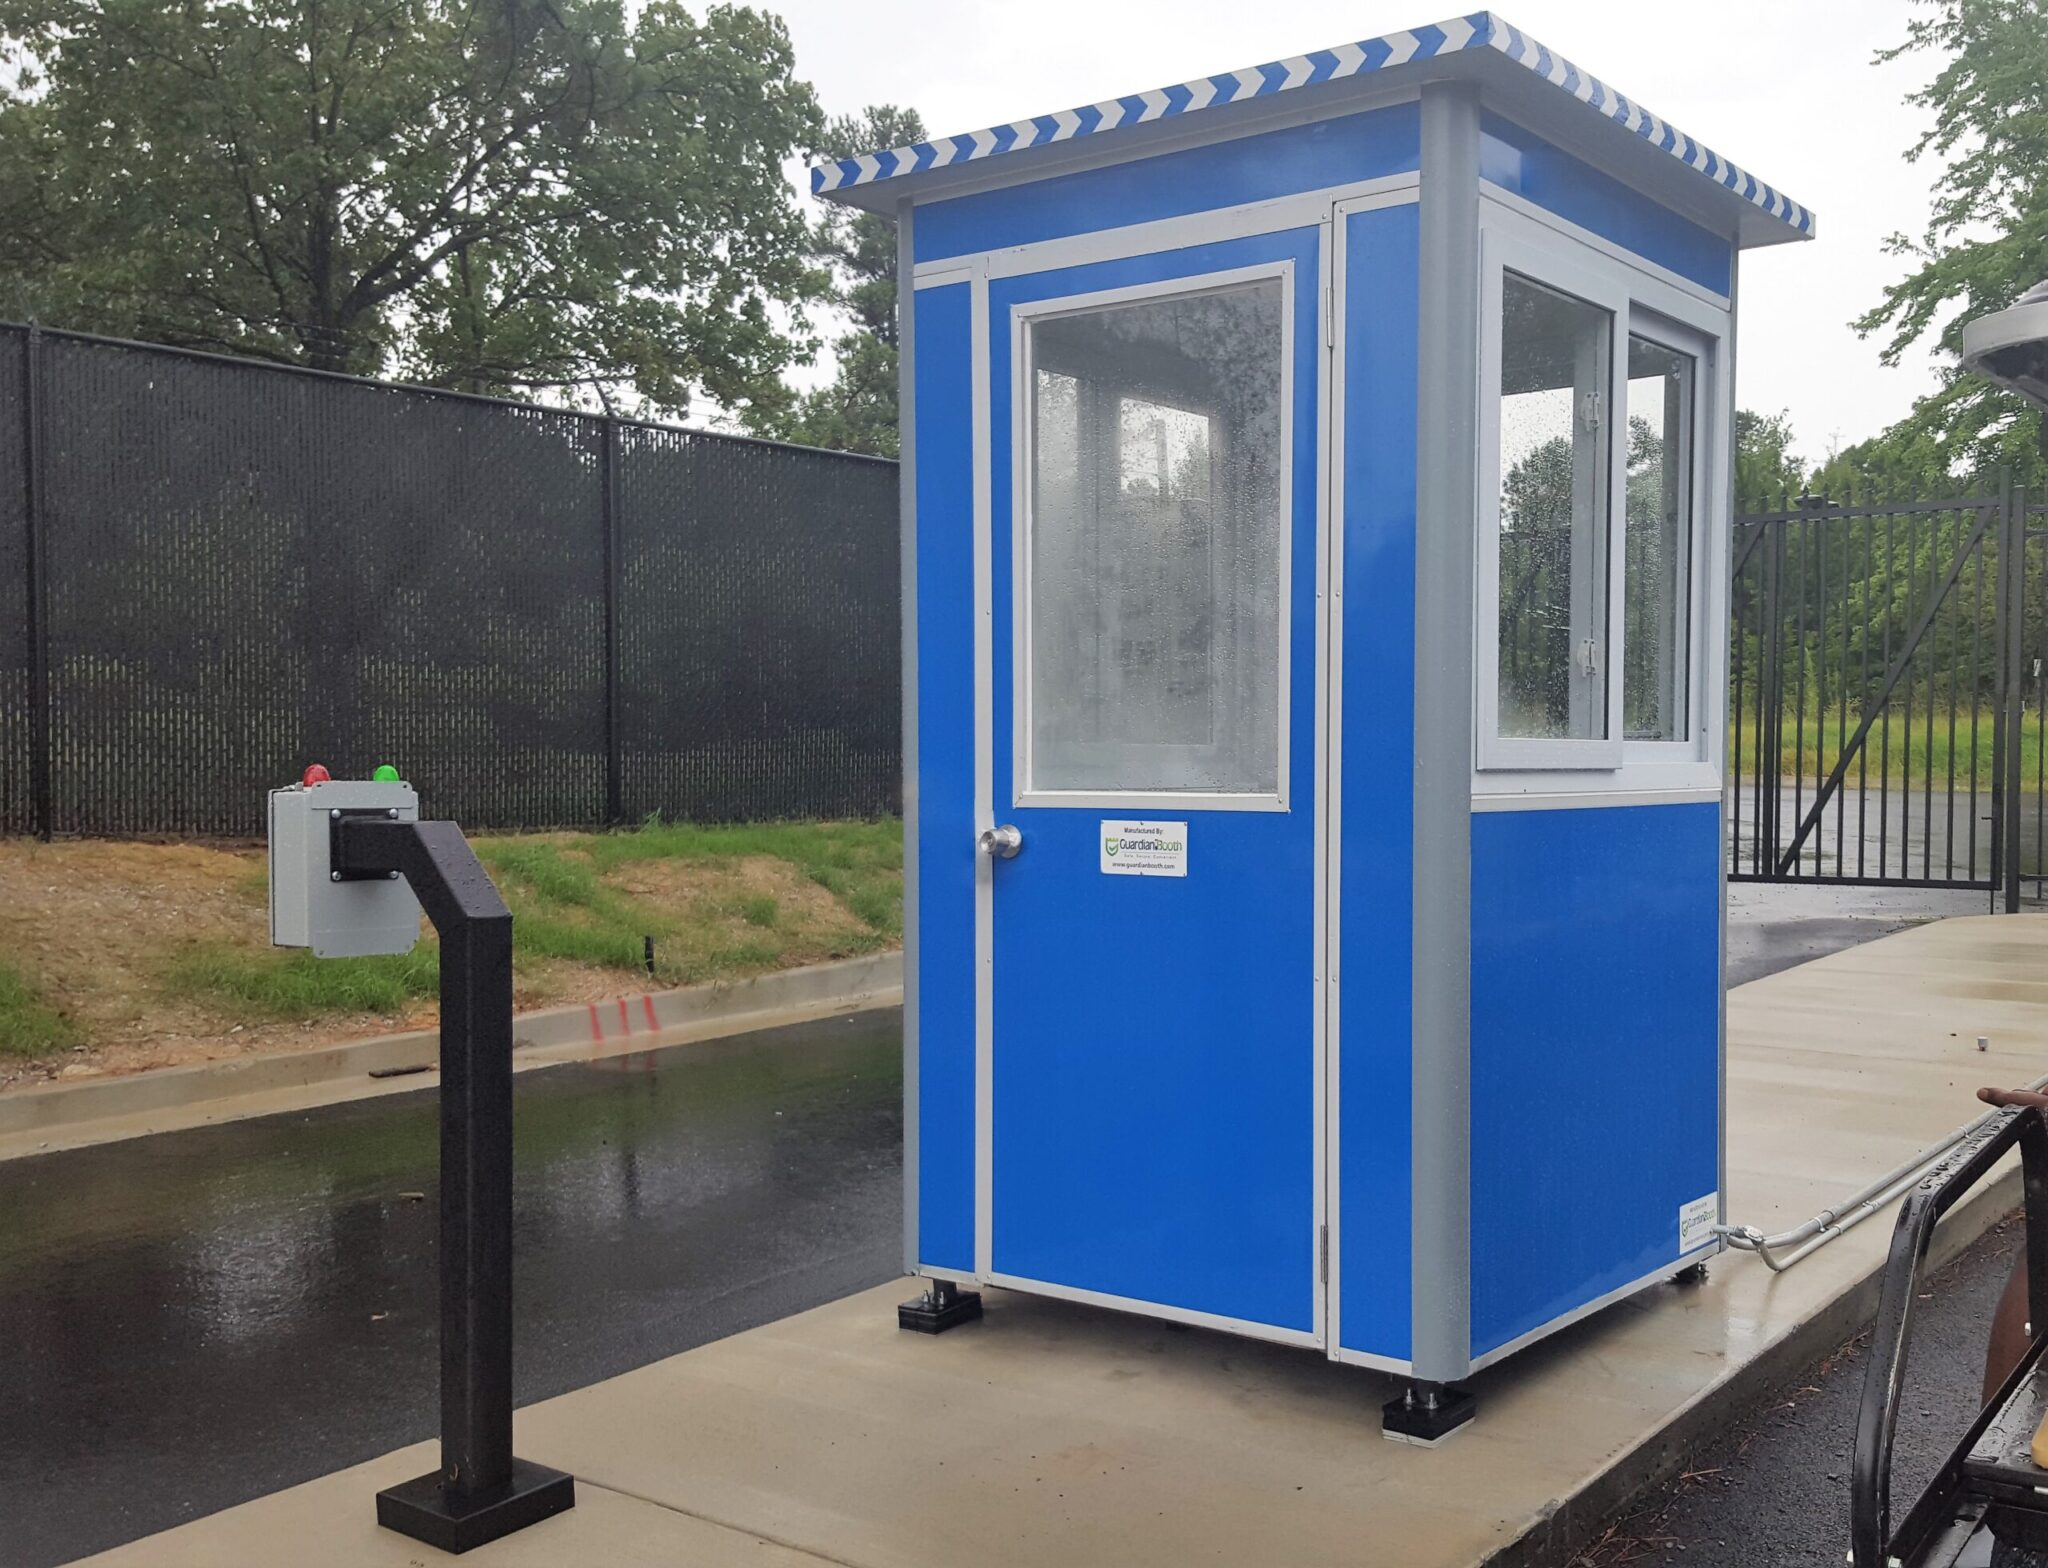 4x4 Entrance Gate Booth in Atlanta, GA Controlling Front Gate with Intercom System, Sliding Windows, and Anchoring Brackets